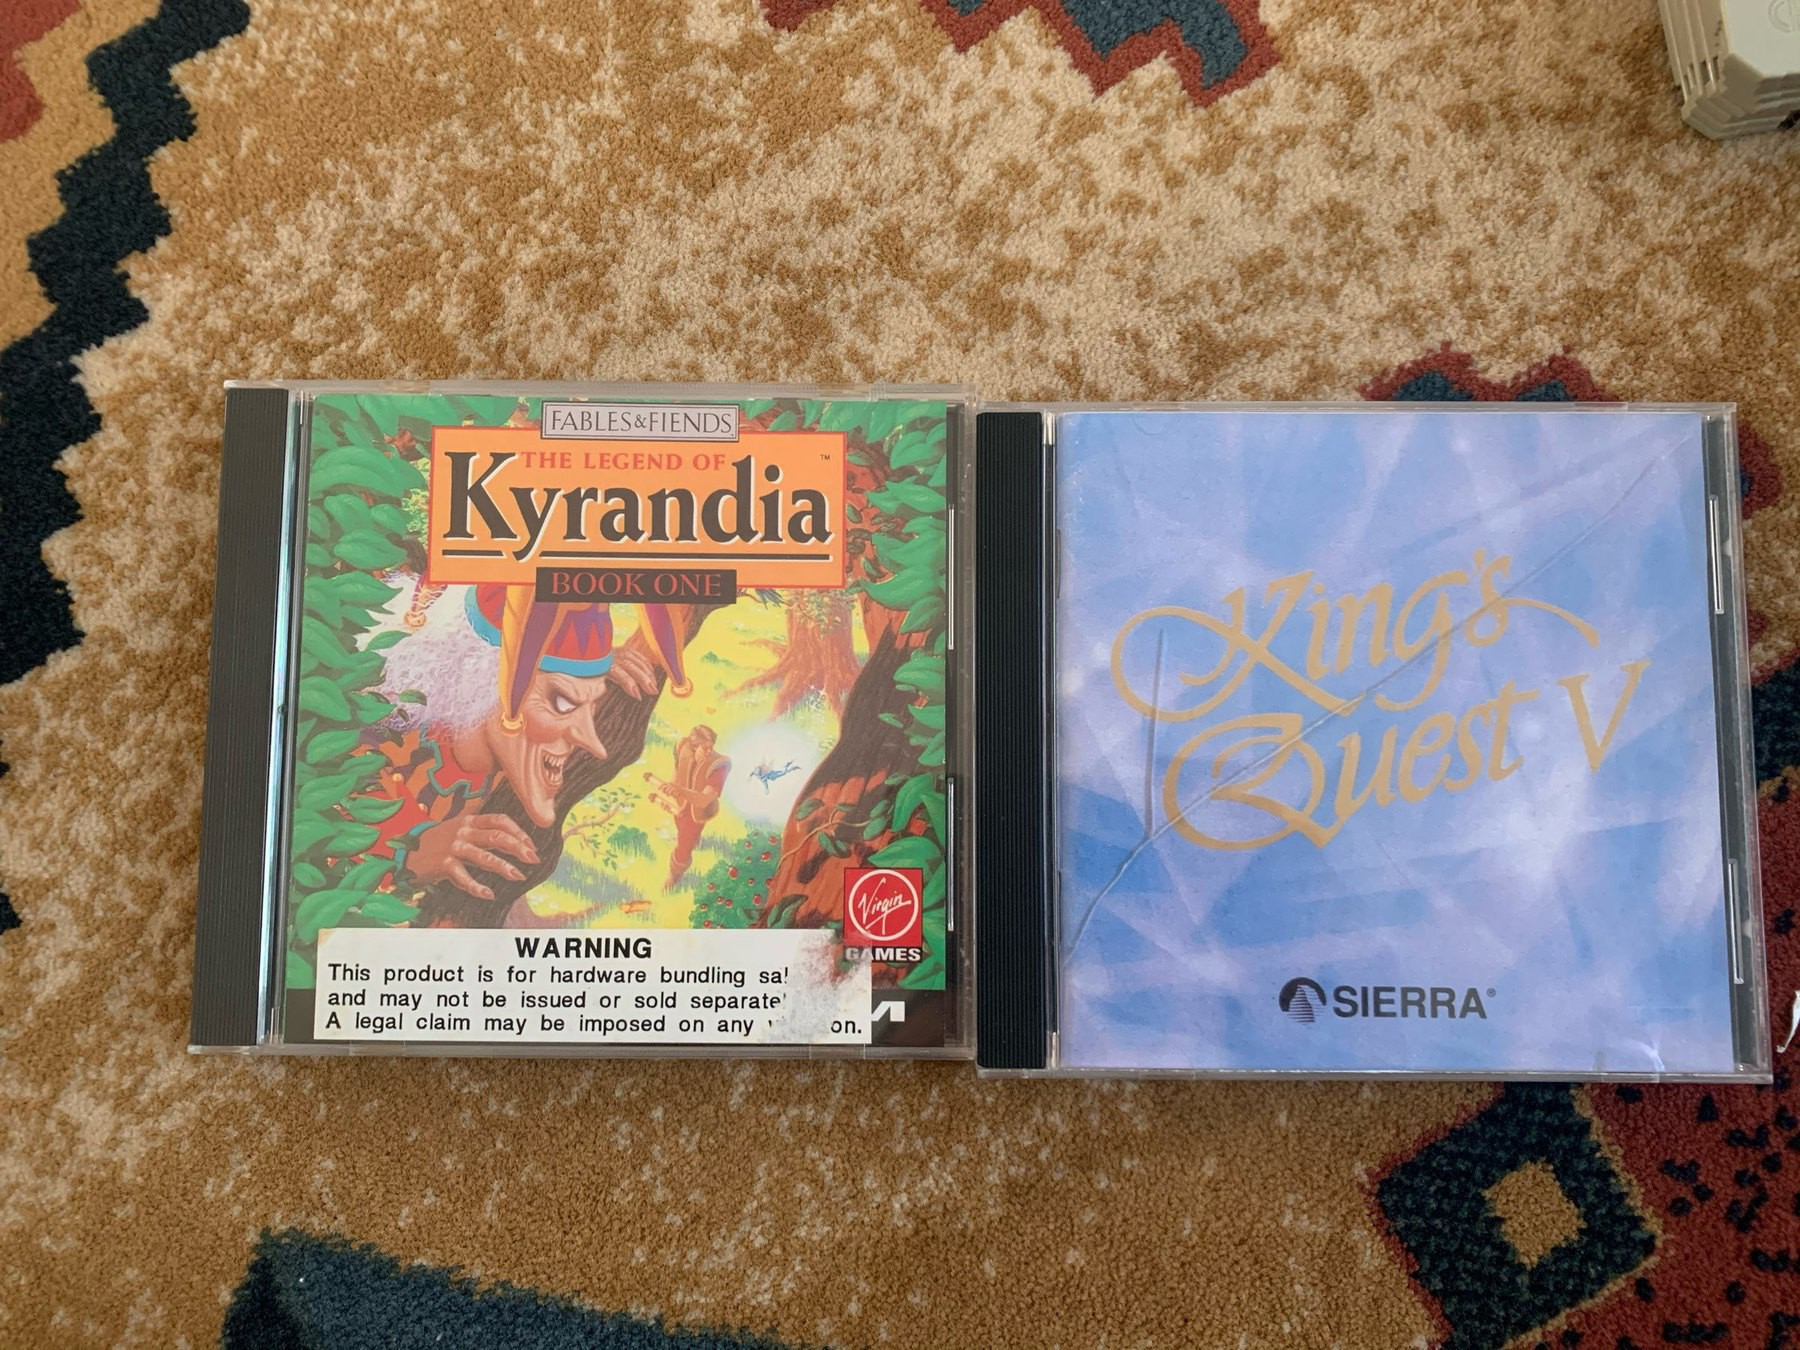 CDs for the games Legend of Kyrandia and Kings Quest V